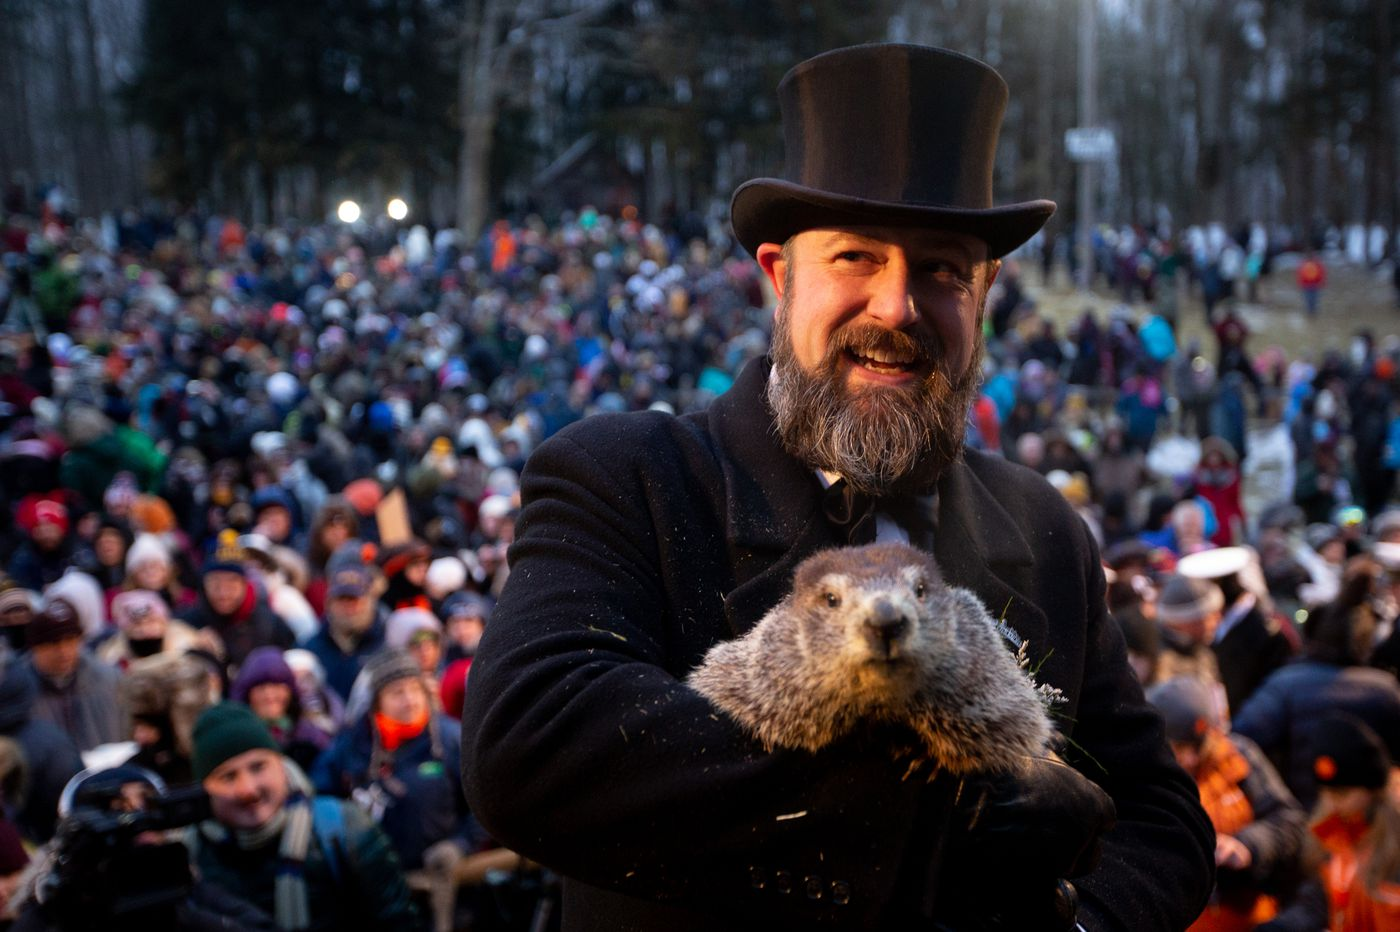 Groundhog Day, the improbable holiday that brings a shot in the arm to a former coal town